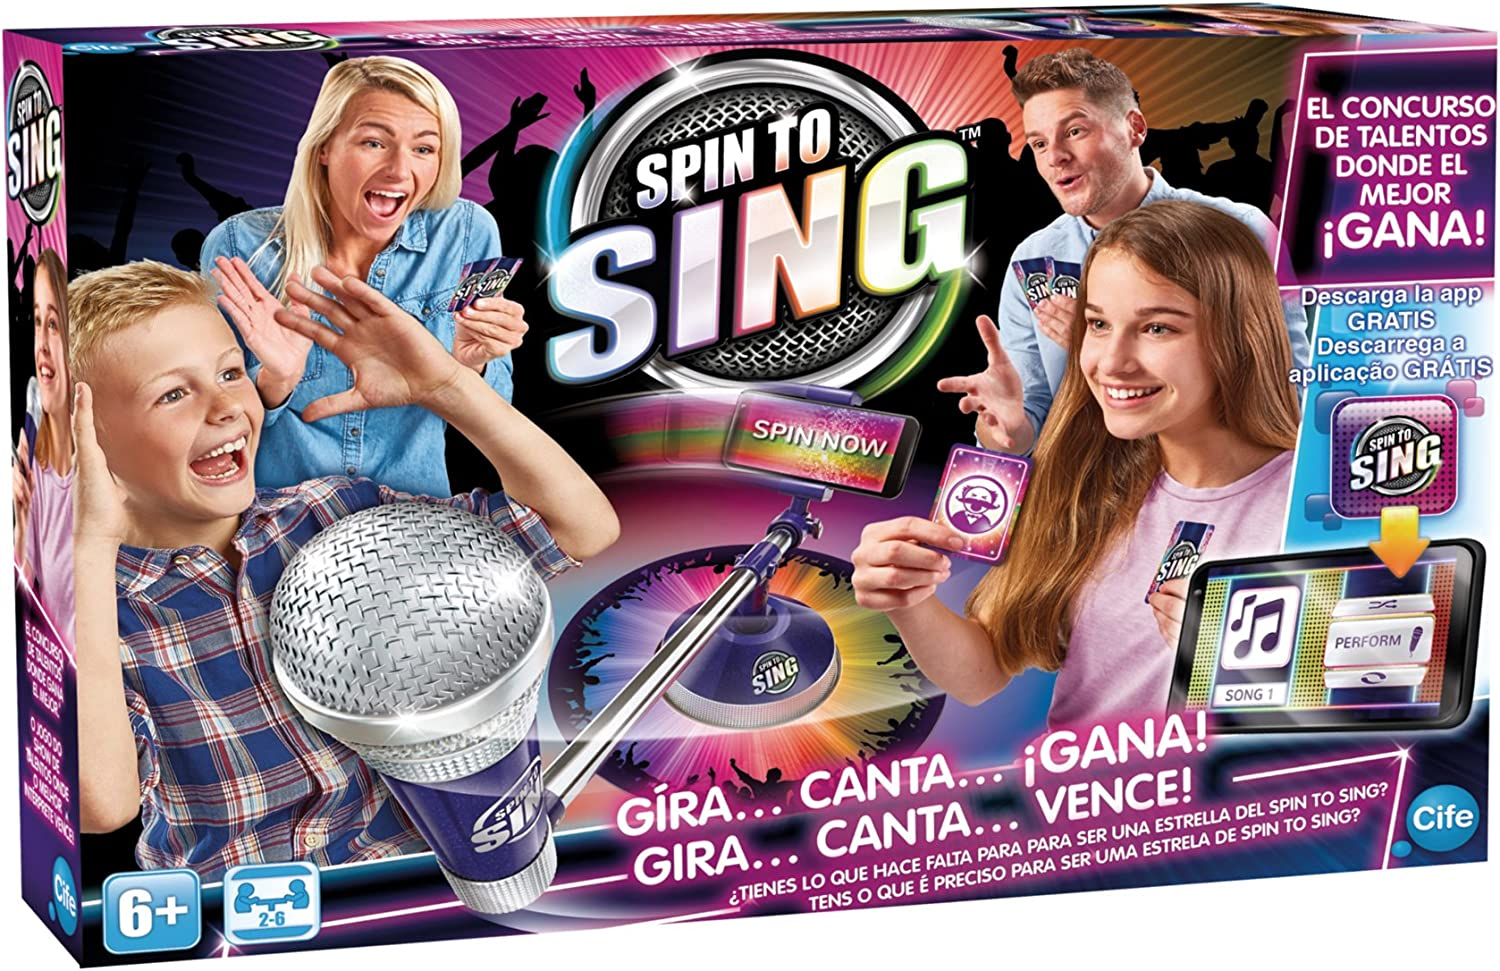 Spin to Sing/ Cife 41393 /The Talent Show Game,